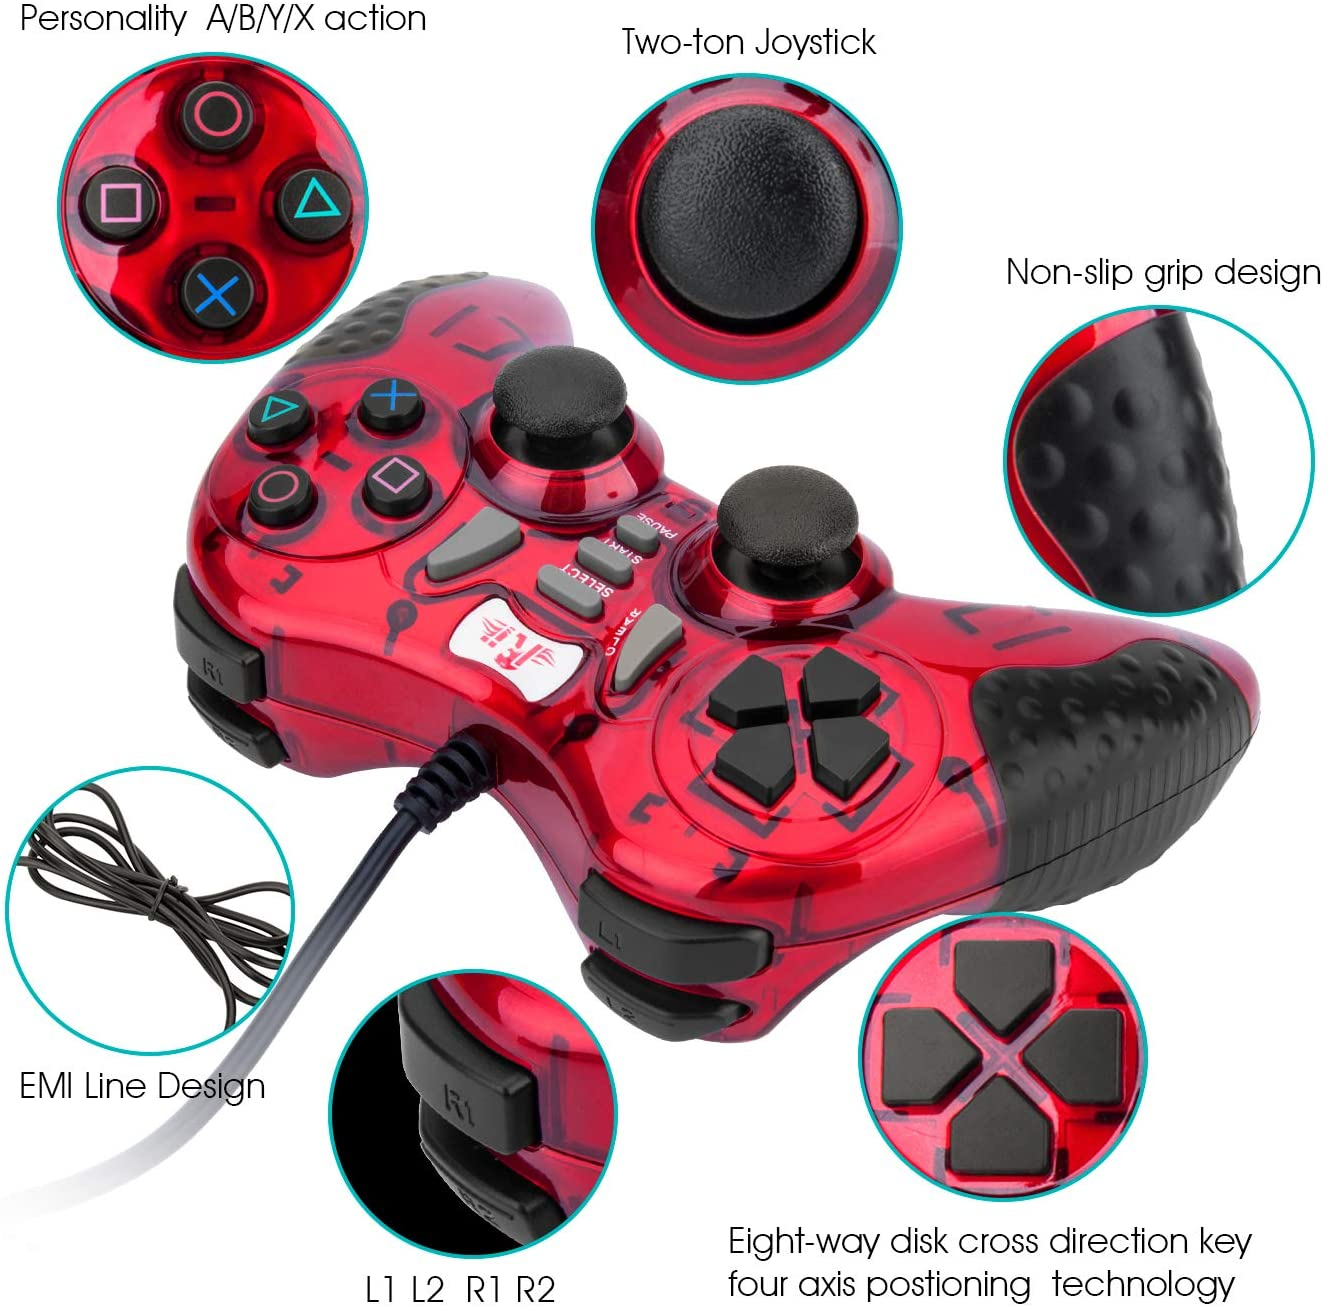 Gaming Wired Gamepad Controller Rii GP500 for PC Windows 98 XP 7 8 10 Games Playstation 3 STEAM Gaming with Joystick Dual Vibration Asymmetric USB Joy pad Handler (TURB 12 FIRE Buttons 4 AXLS): Computers & Accessories